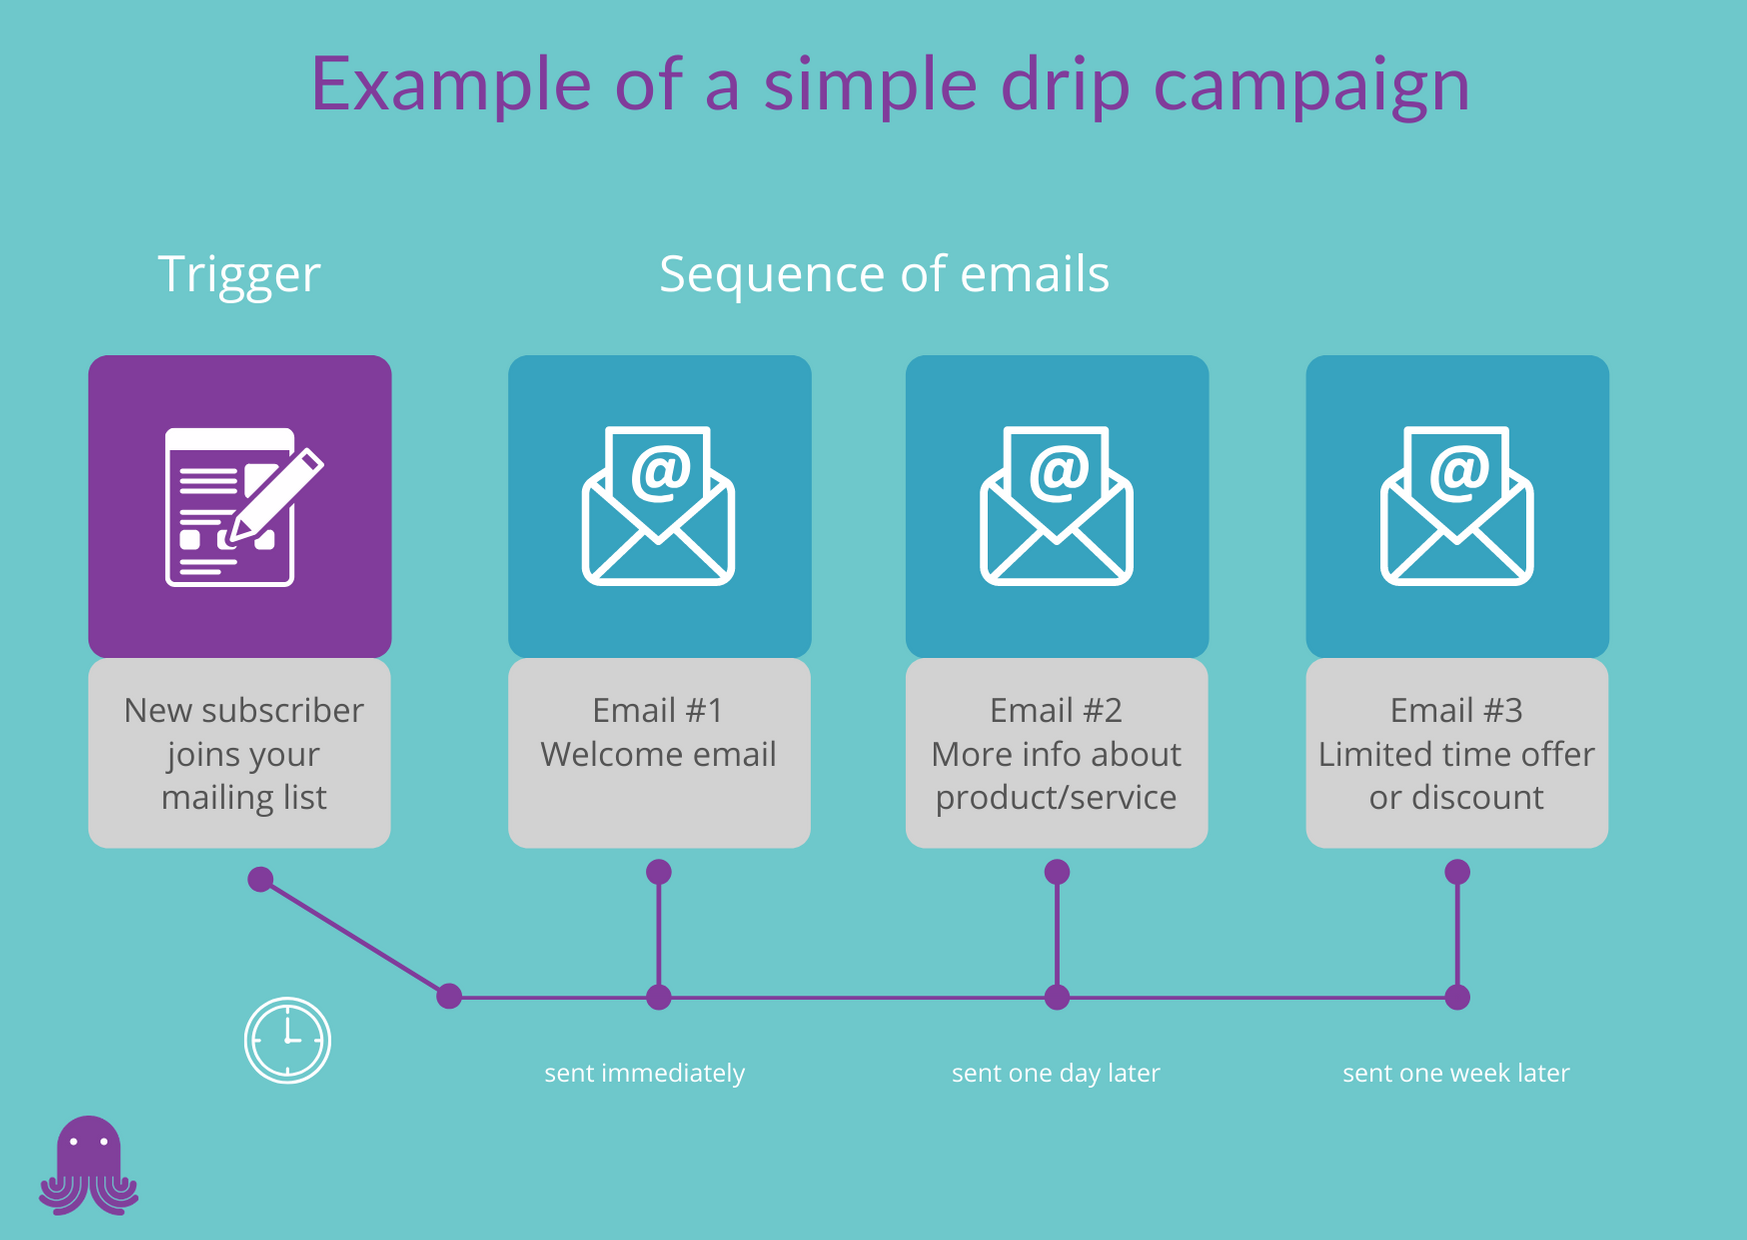 Example of a simple drip campaign